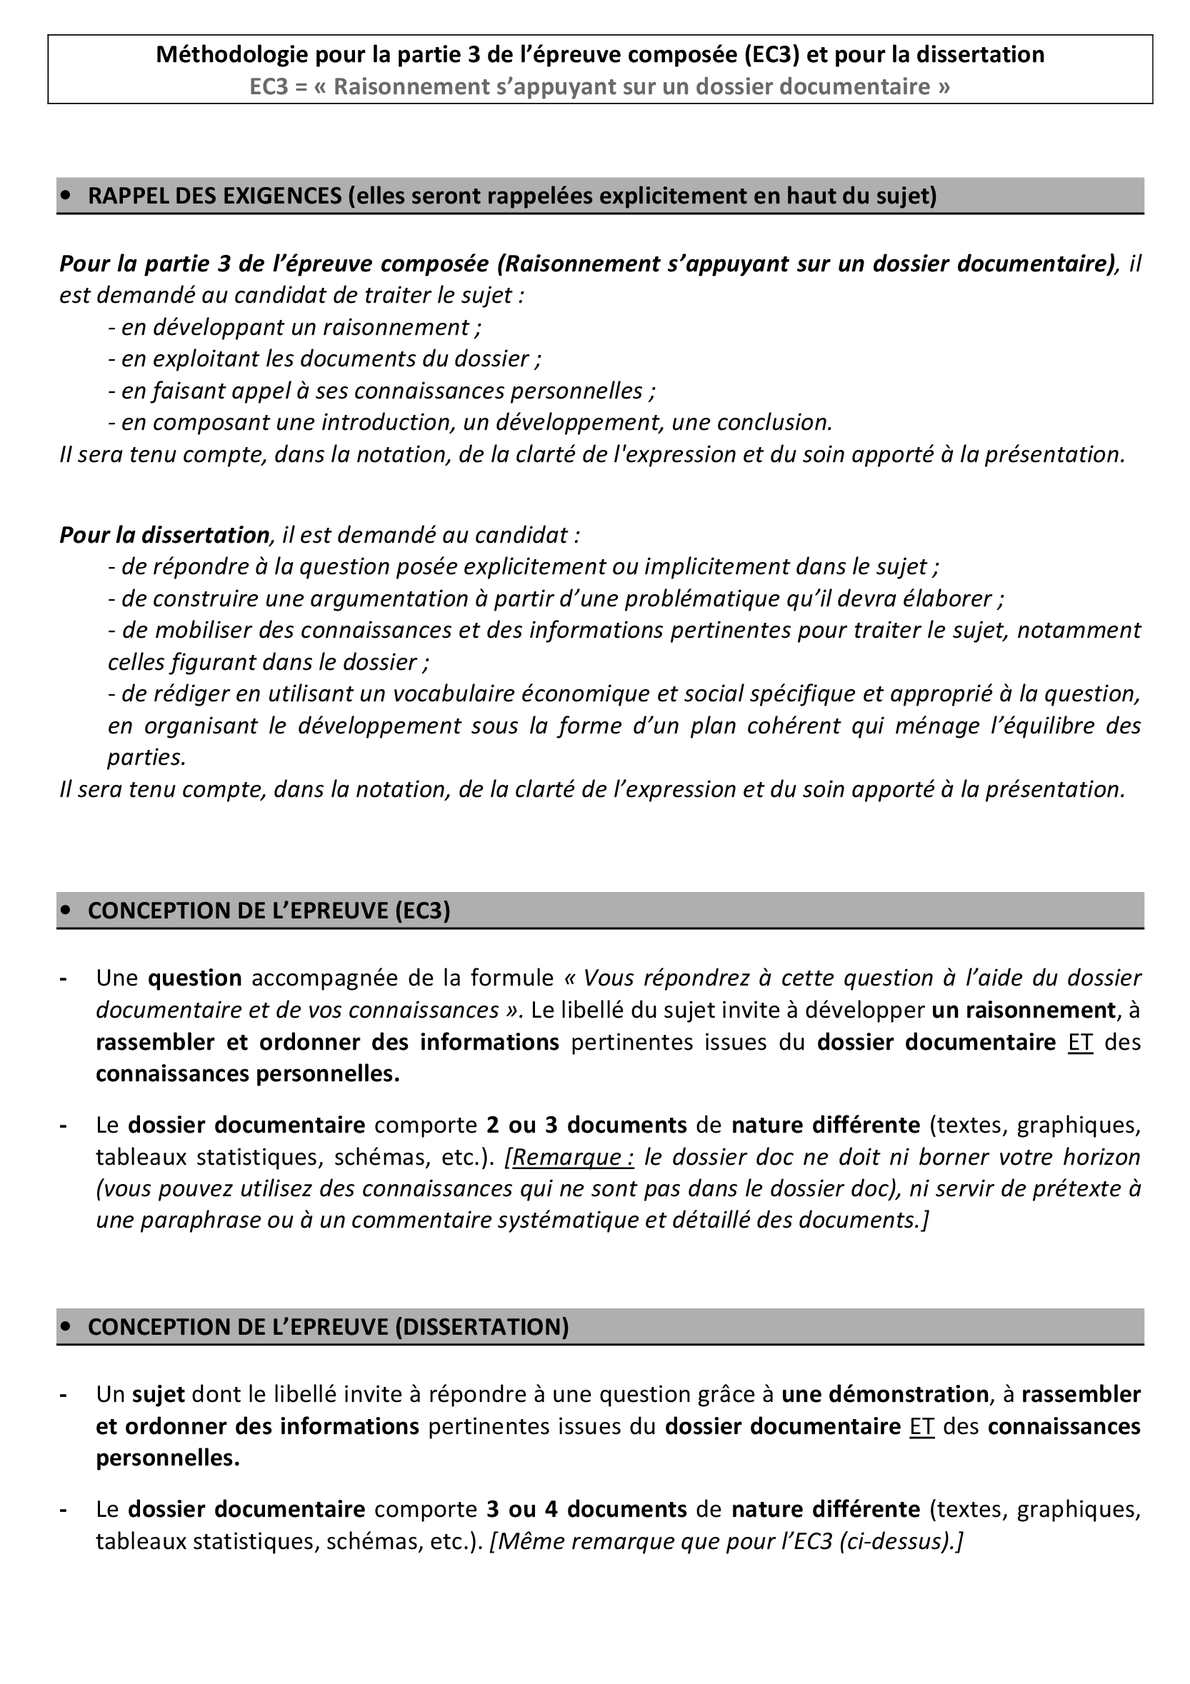 introduction dissertation bac francais Article writing jobs corrig dissertation francais bac 2009 dissertation jens muller dissertation of a roast pig.